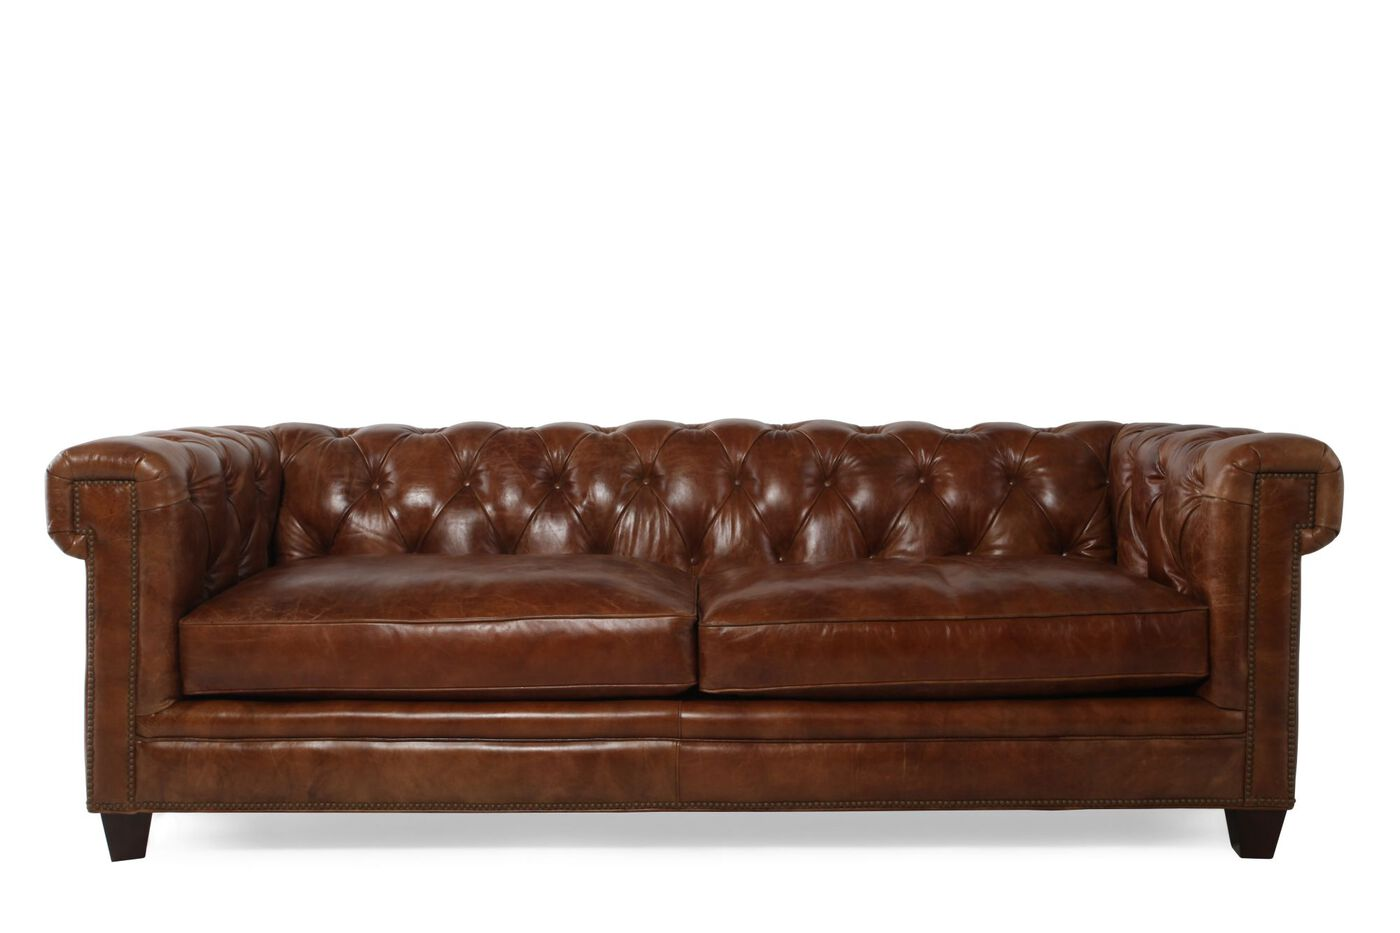 Hooker Stationary Leather Sofa | Mathis Brothers Furniture